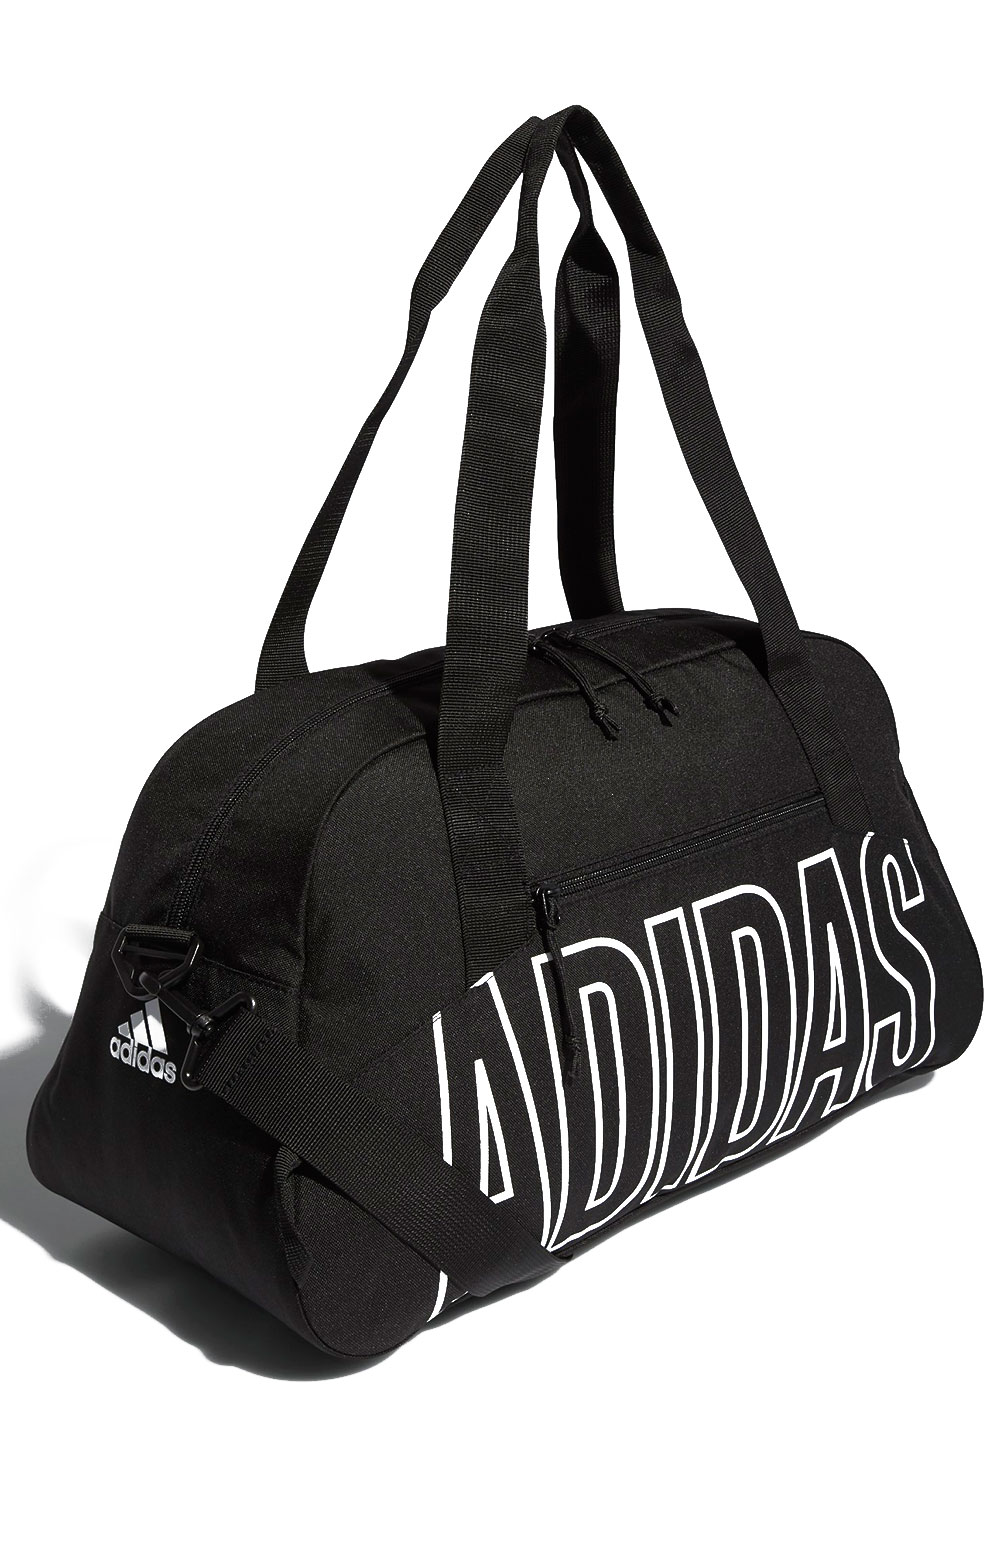 Graphic Duffel Bag - Black/White  3